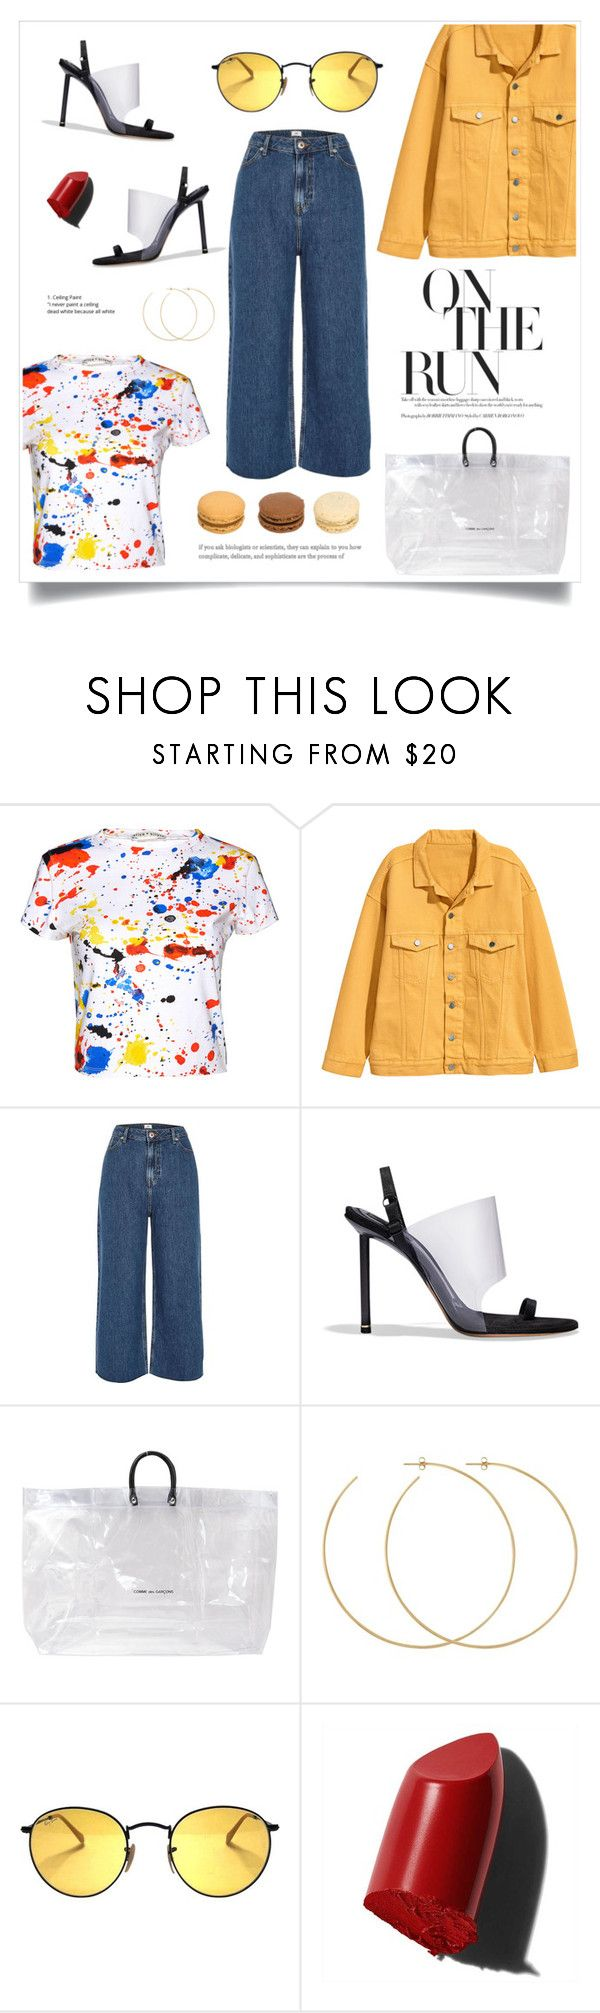 """LOVE"" by fcris7176 ❤ liked on Polyvore featuring Alice + Olivia, River Island, Alexander Wang, Comme des Garçons, Allison Bryan and Bobbi Brown Cosmetics"